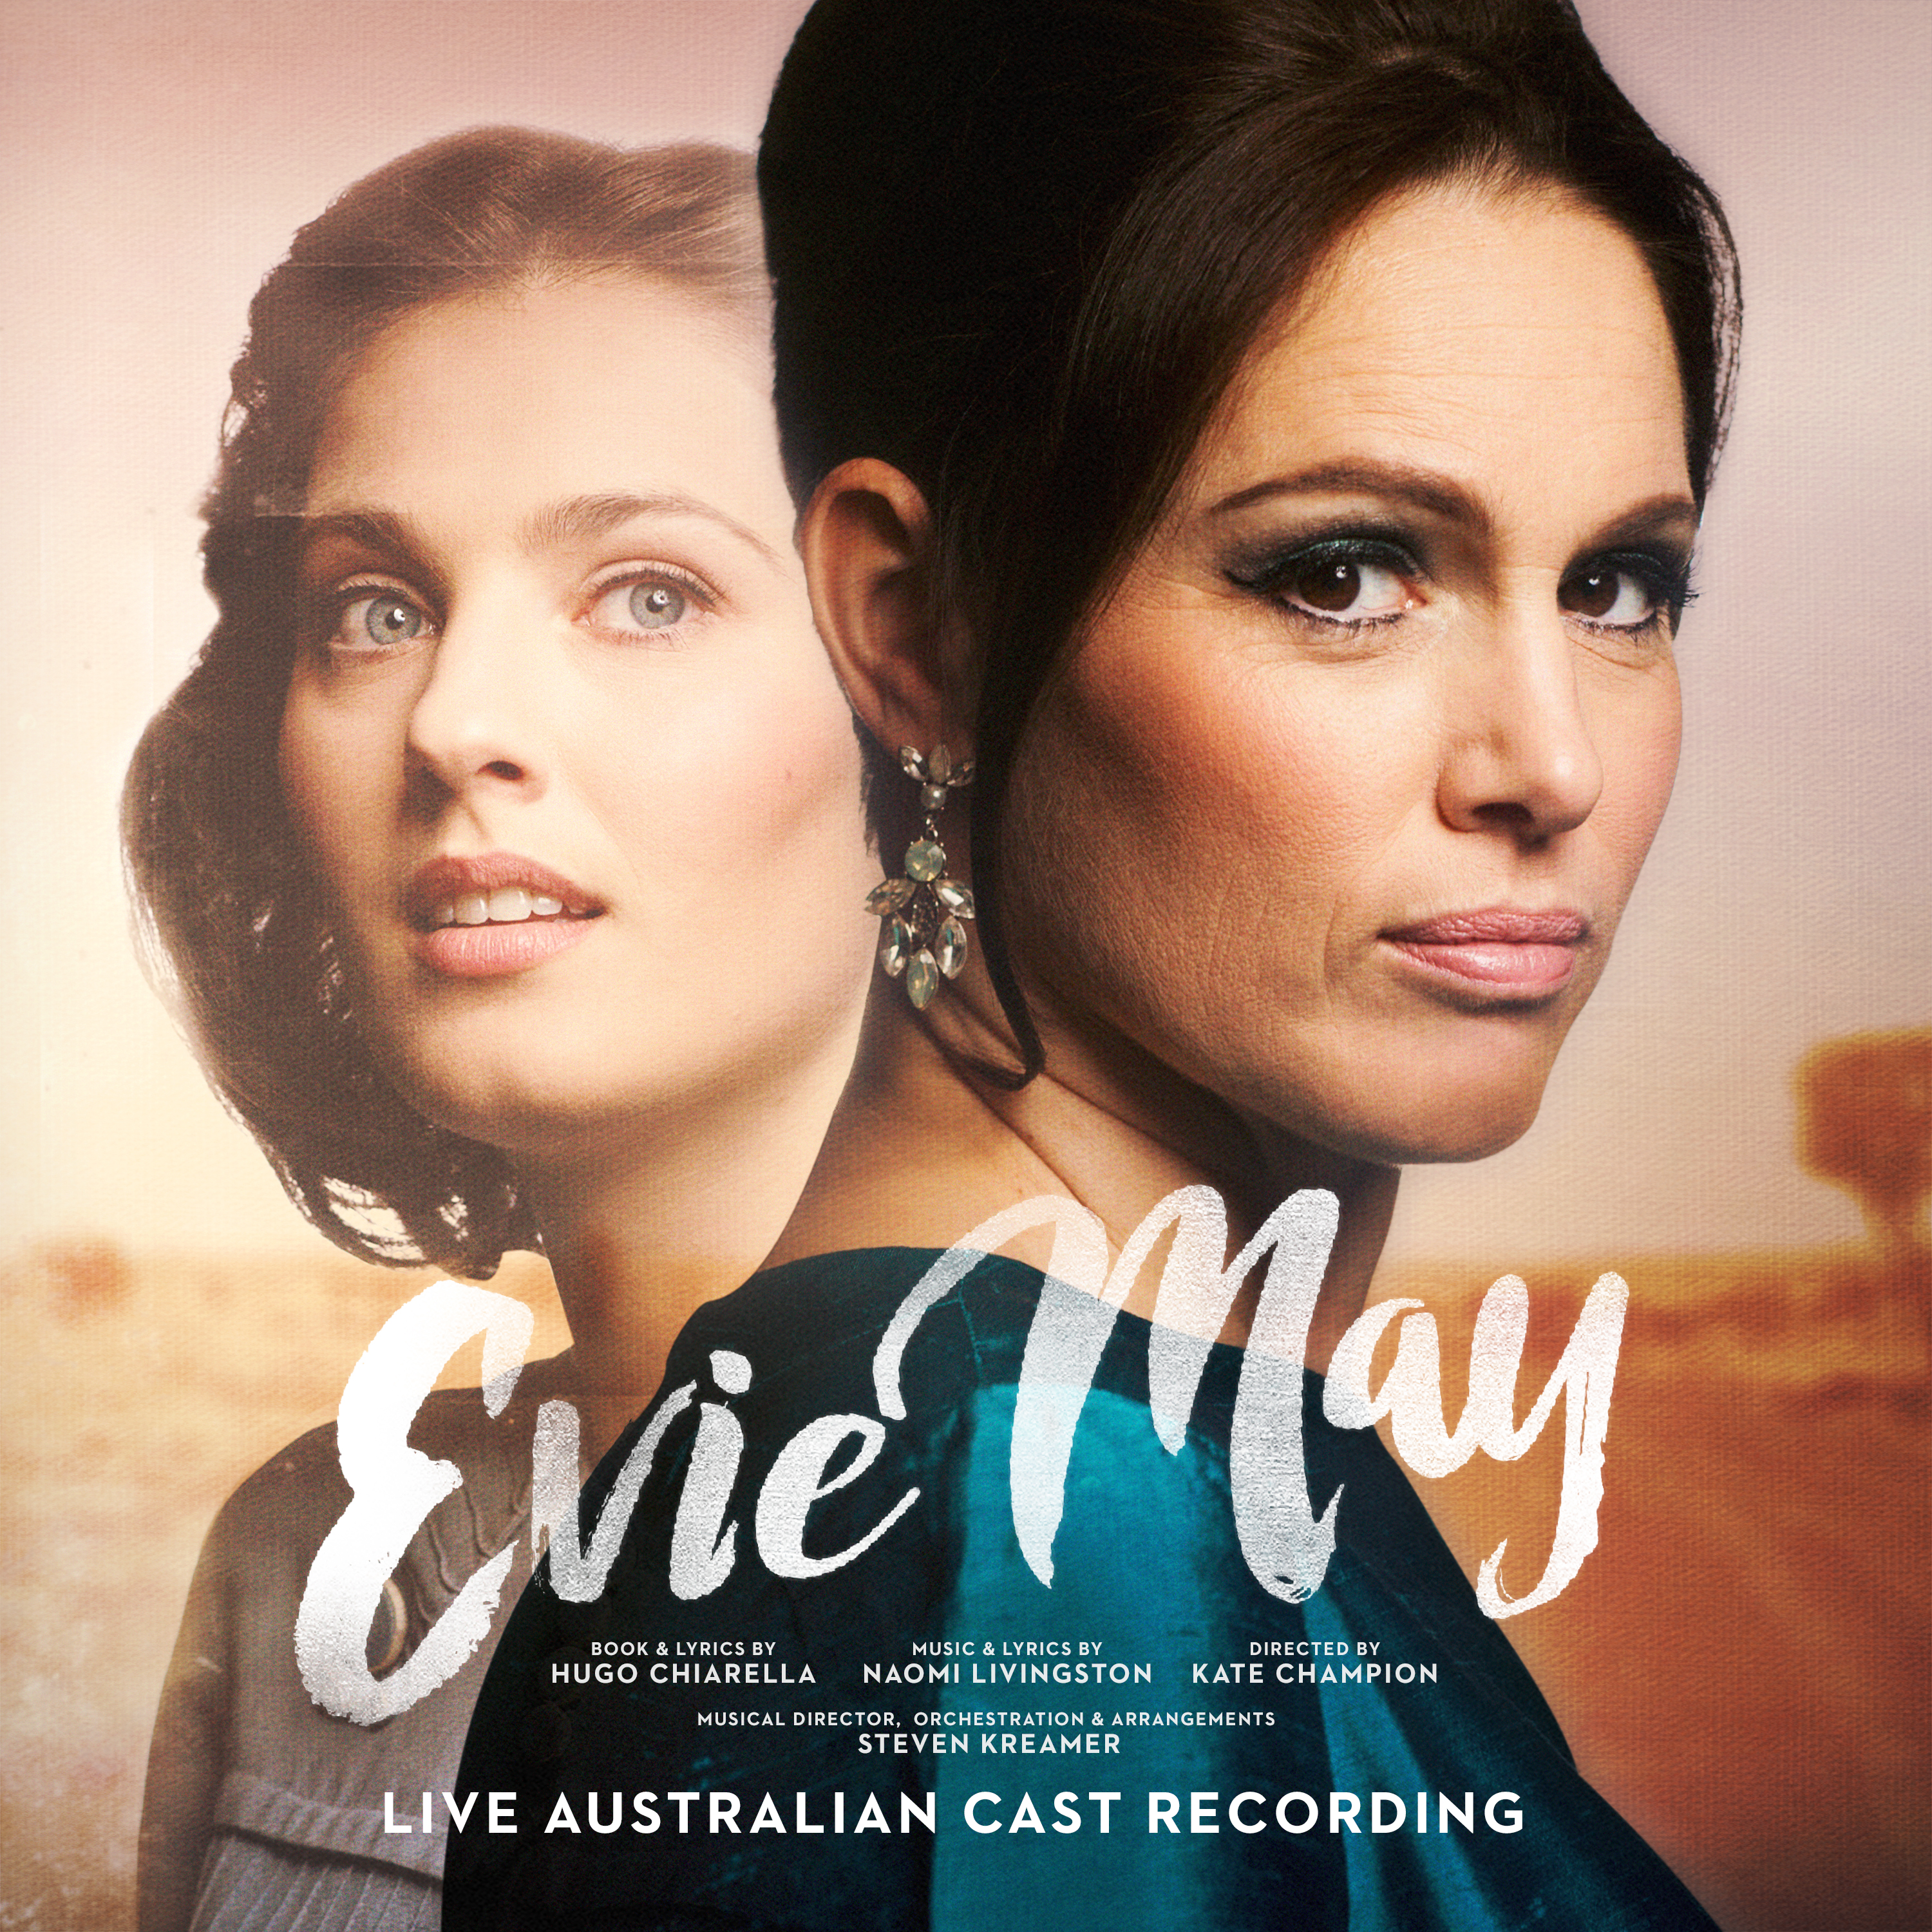 Evie May CD cover